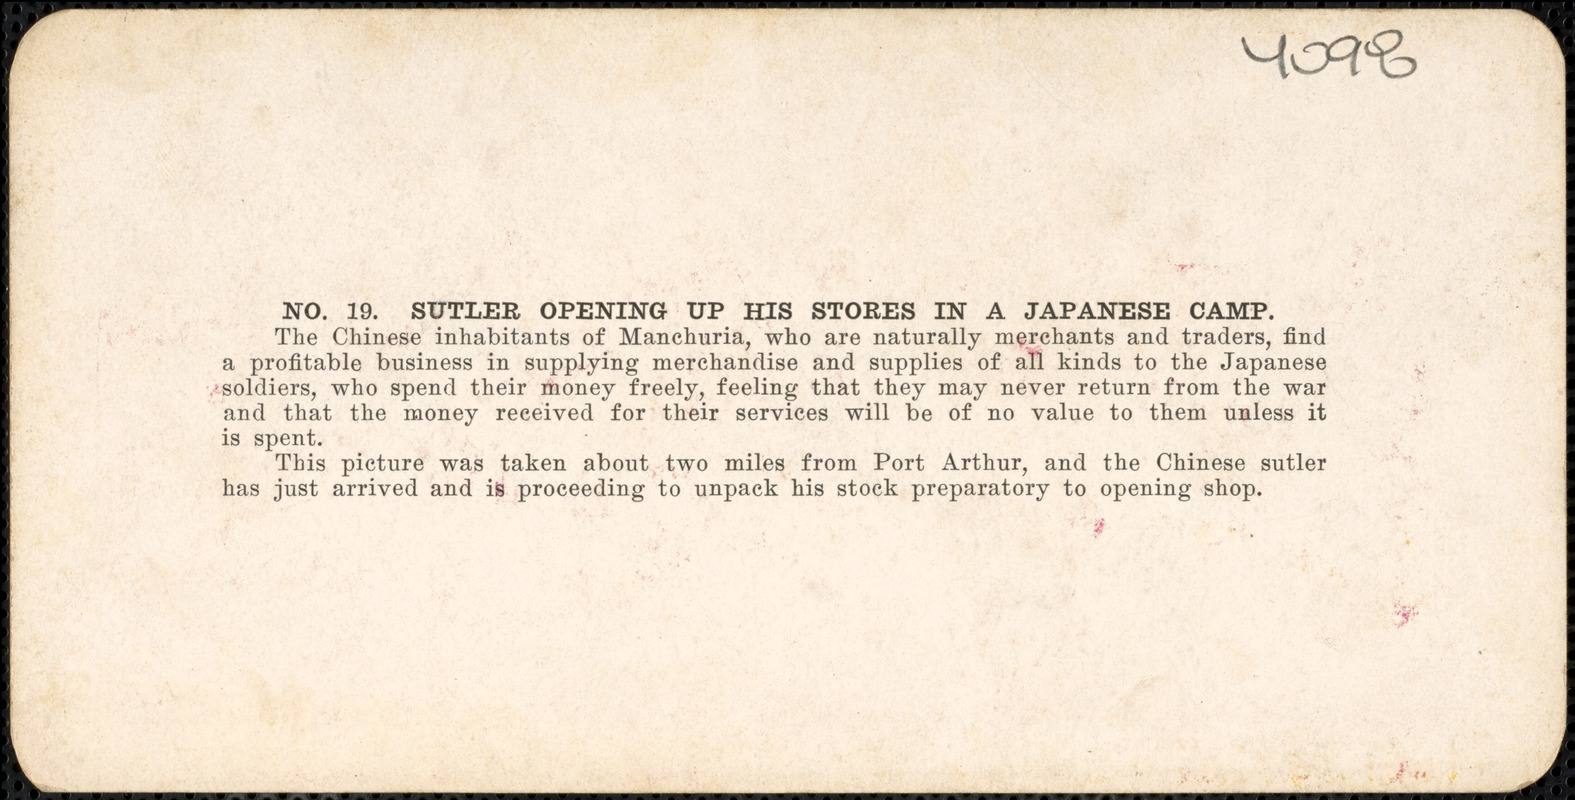 Sutler opening up his stores in a Japanese camp